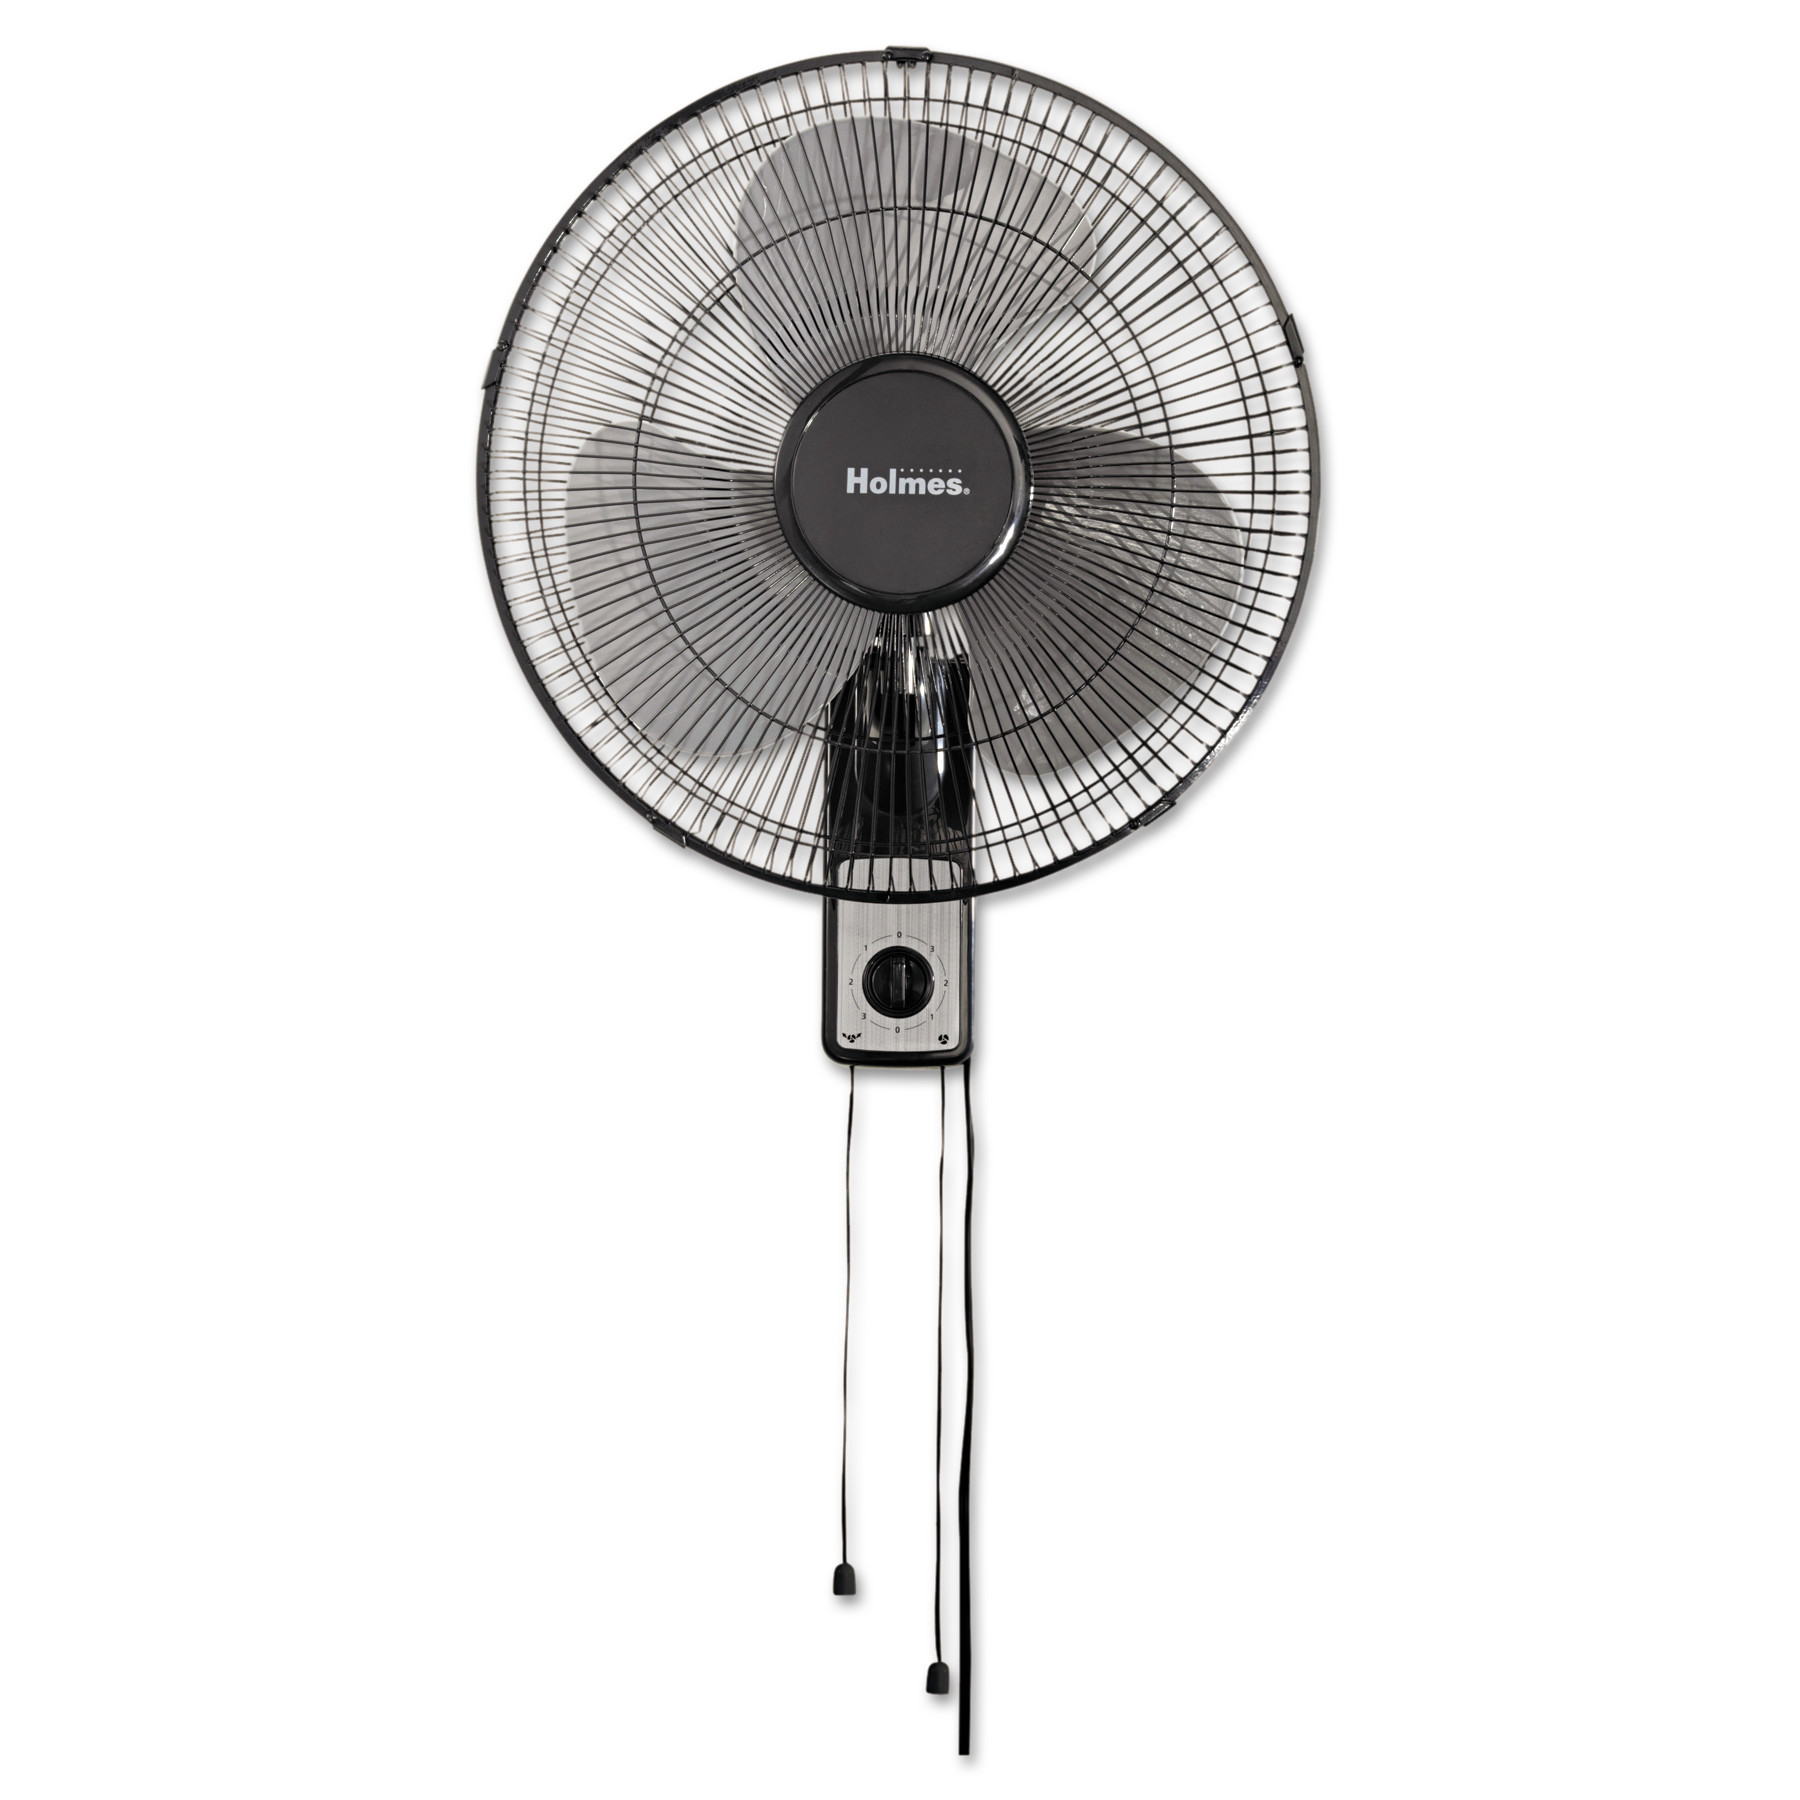 "Holmes 16"" Wall Mount Fan, 3-Speed, Metal, Black"